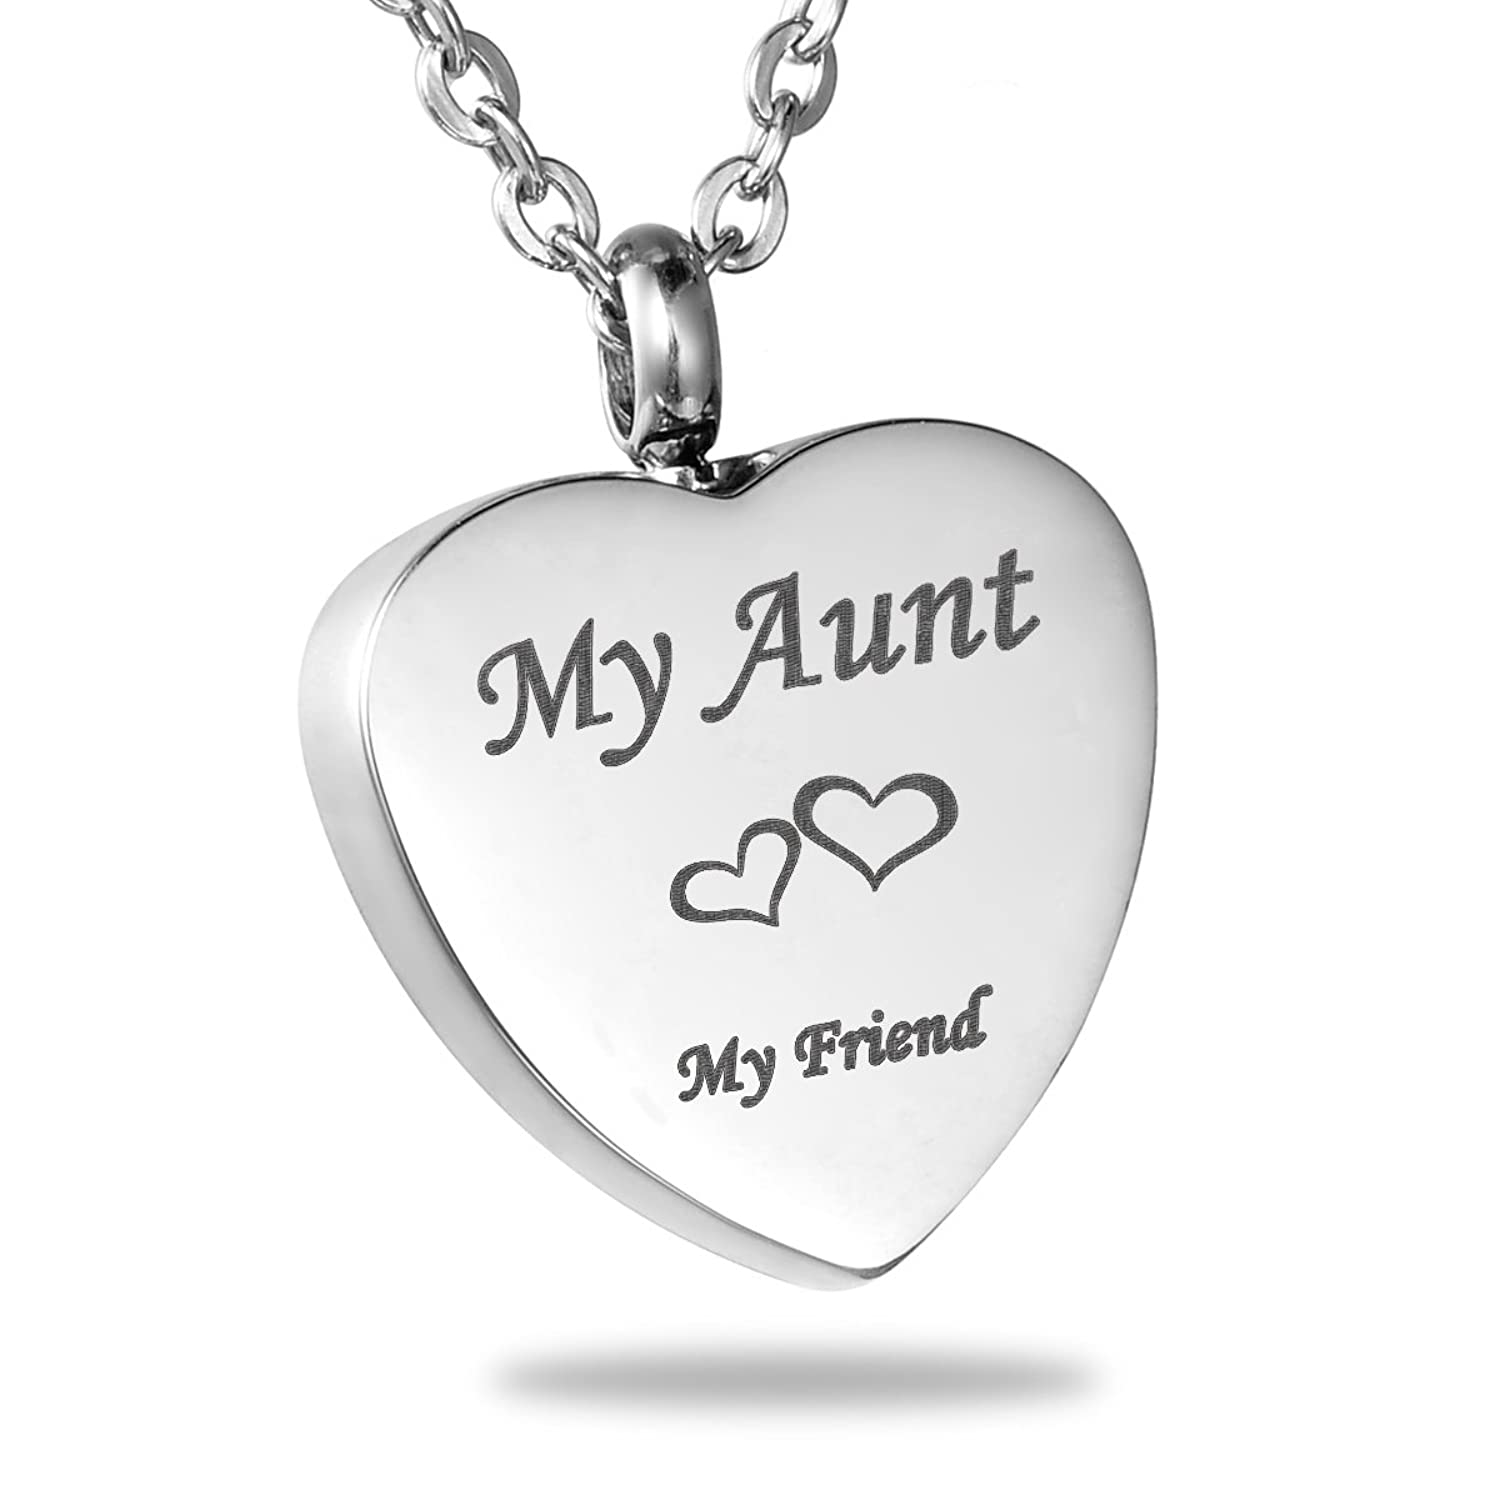 uk alphabet aunt jewellery urn co dp charms necklace wings ash a angel memorial cremation amazon ampl my heart keepsake